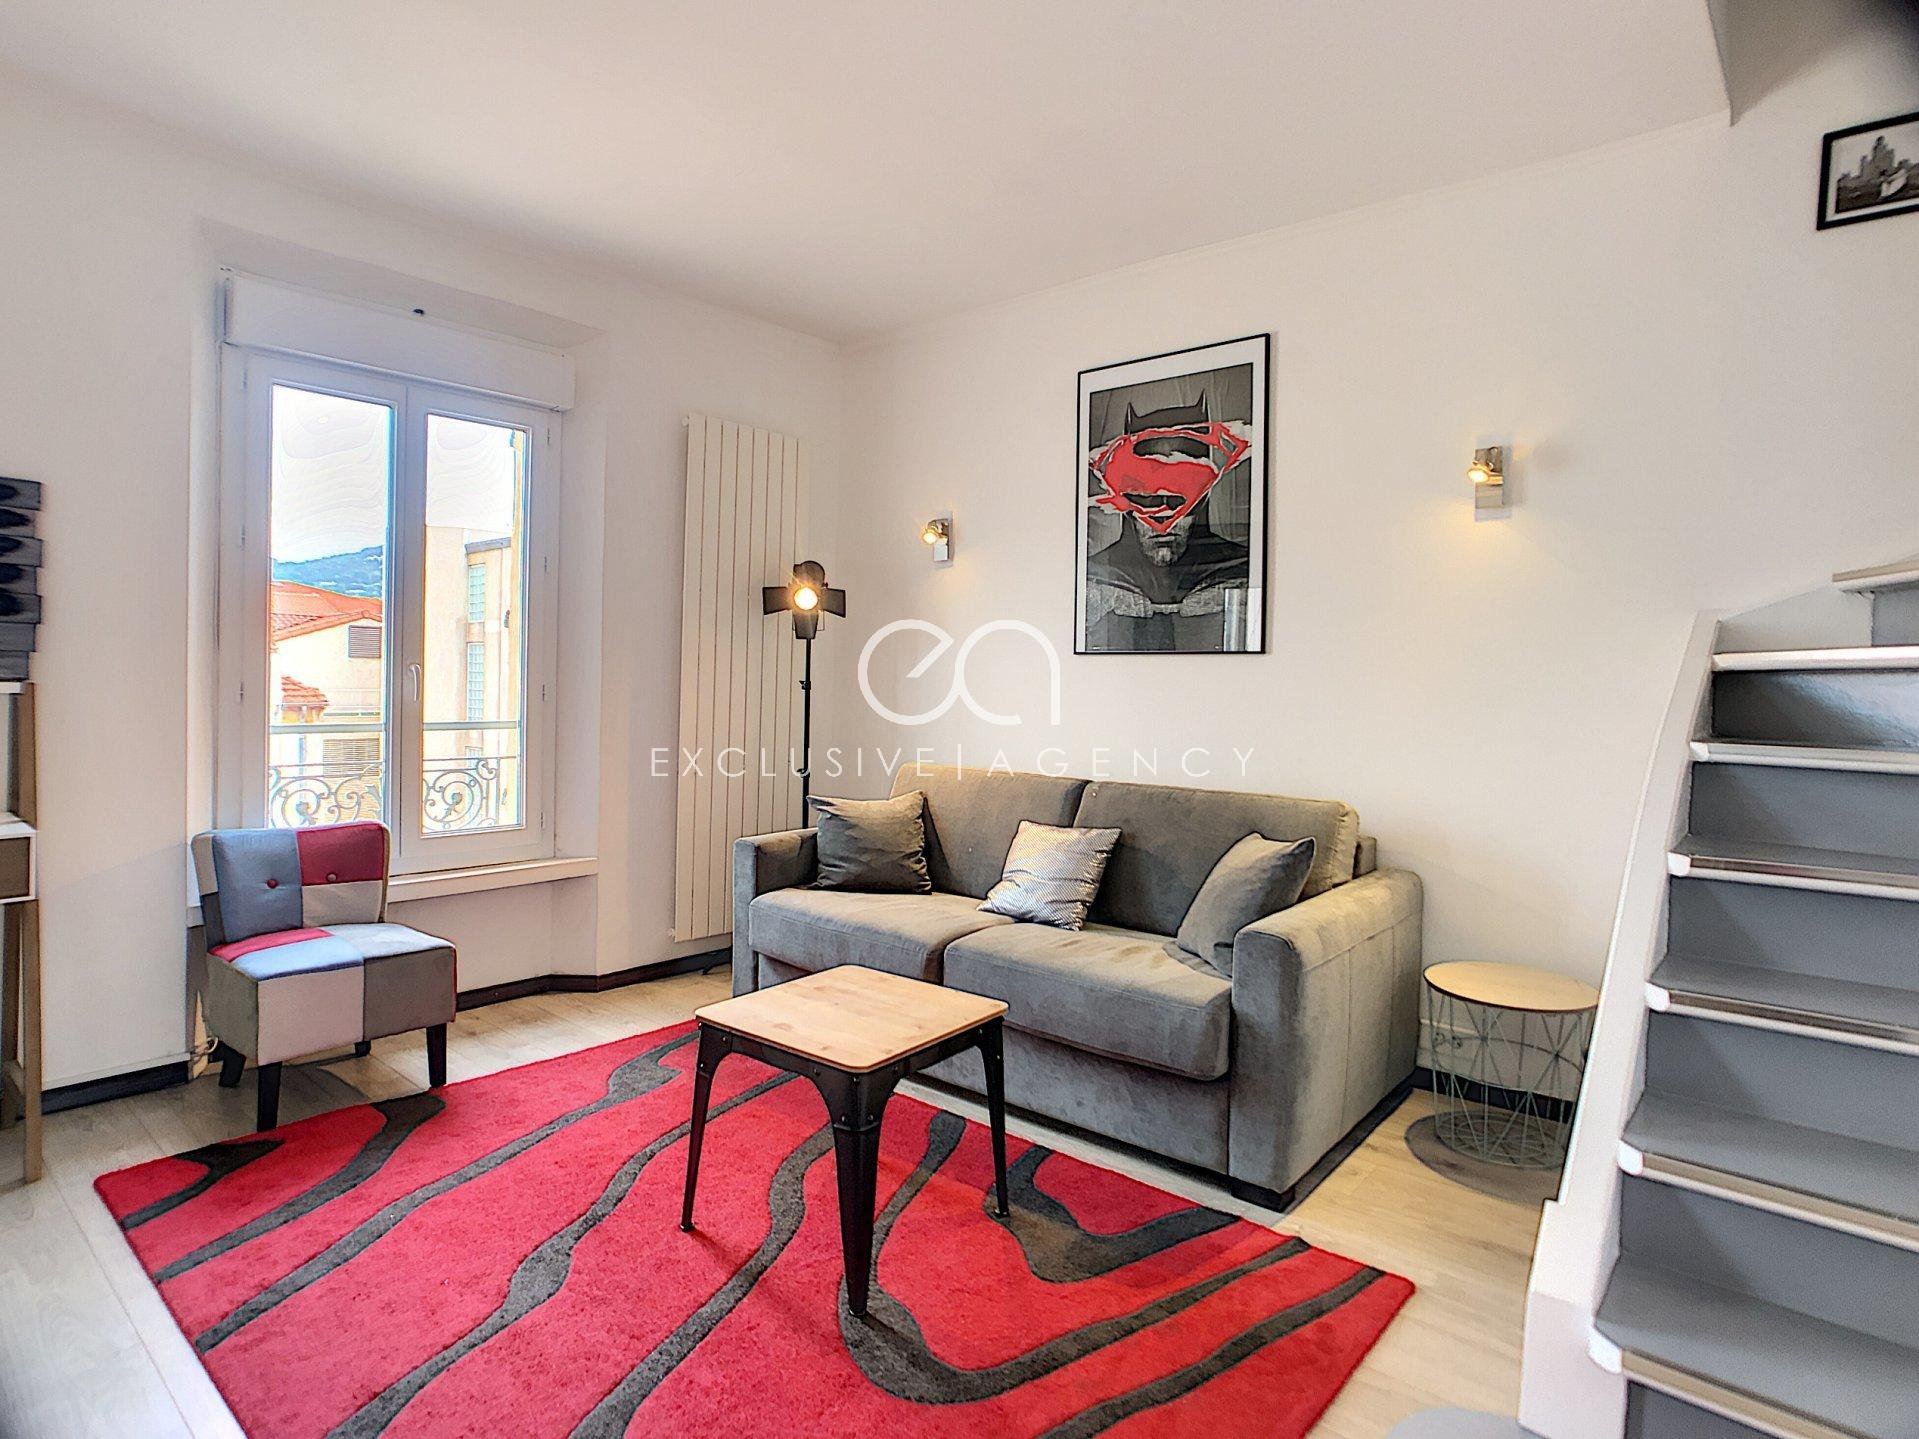 MONTHLY RENTAL IN CANNES CARRE D'OR 1-BEDROOM APARTMENT ON DUPLEX